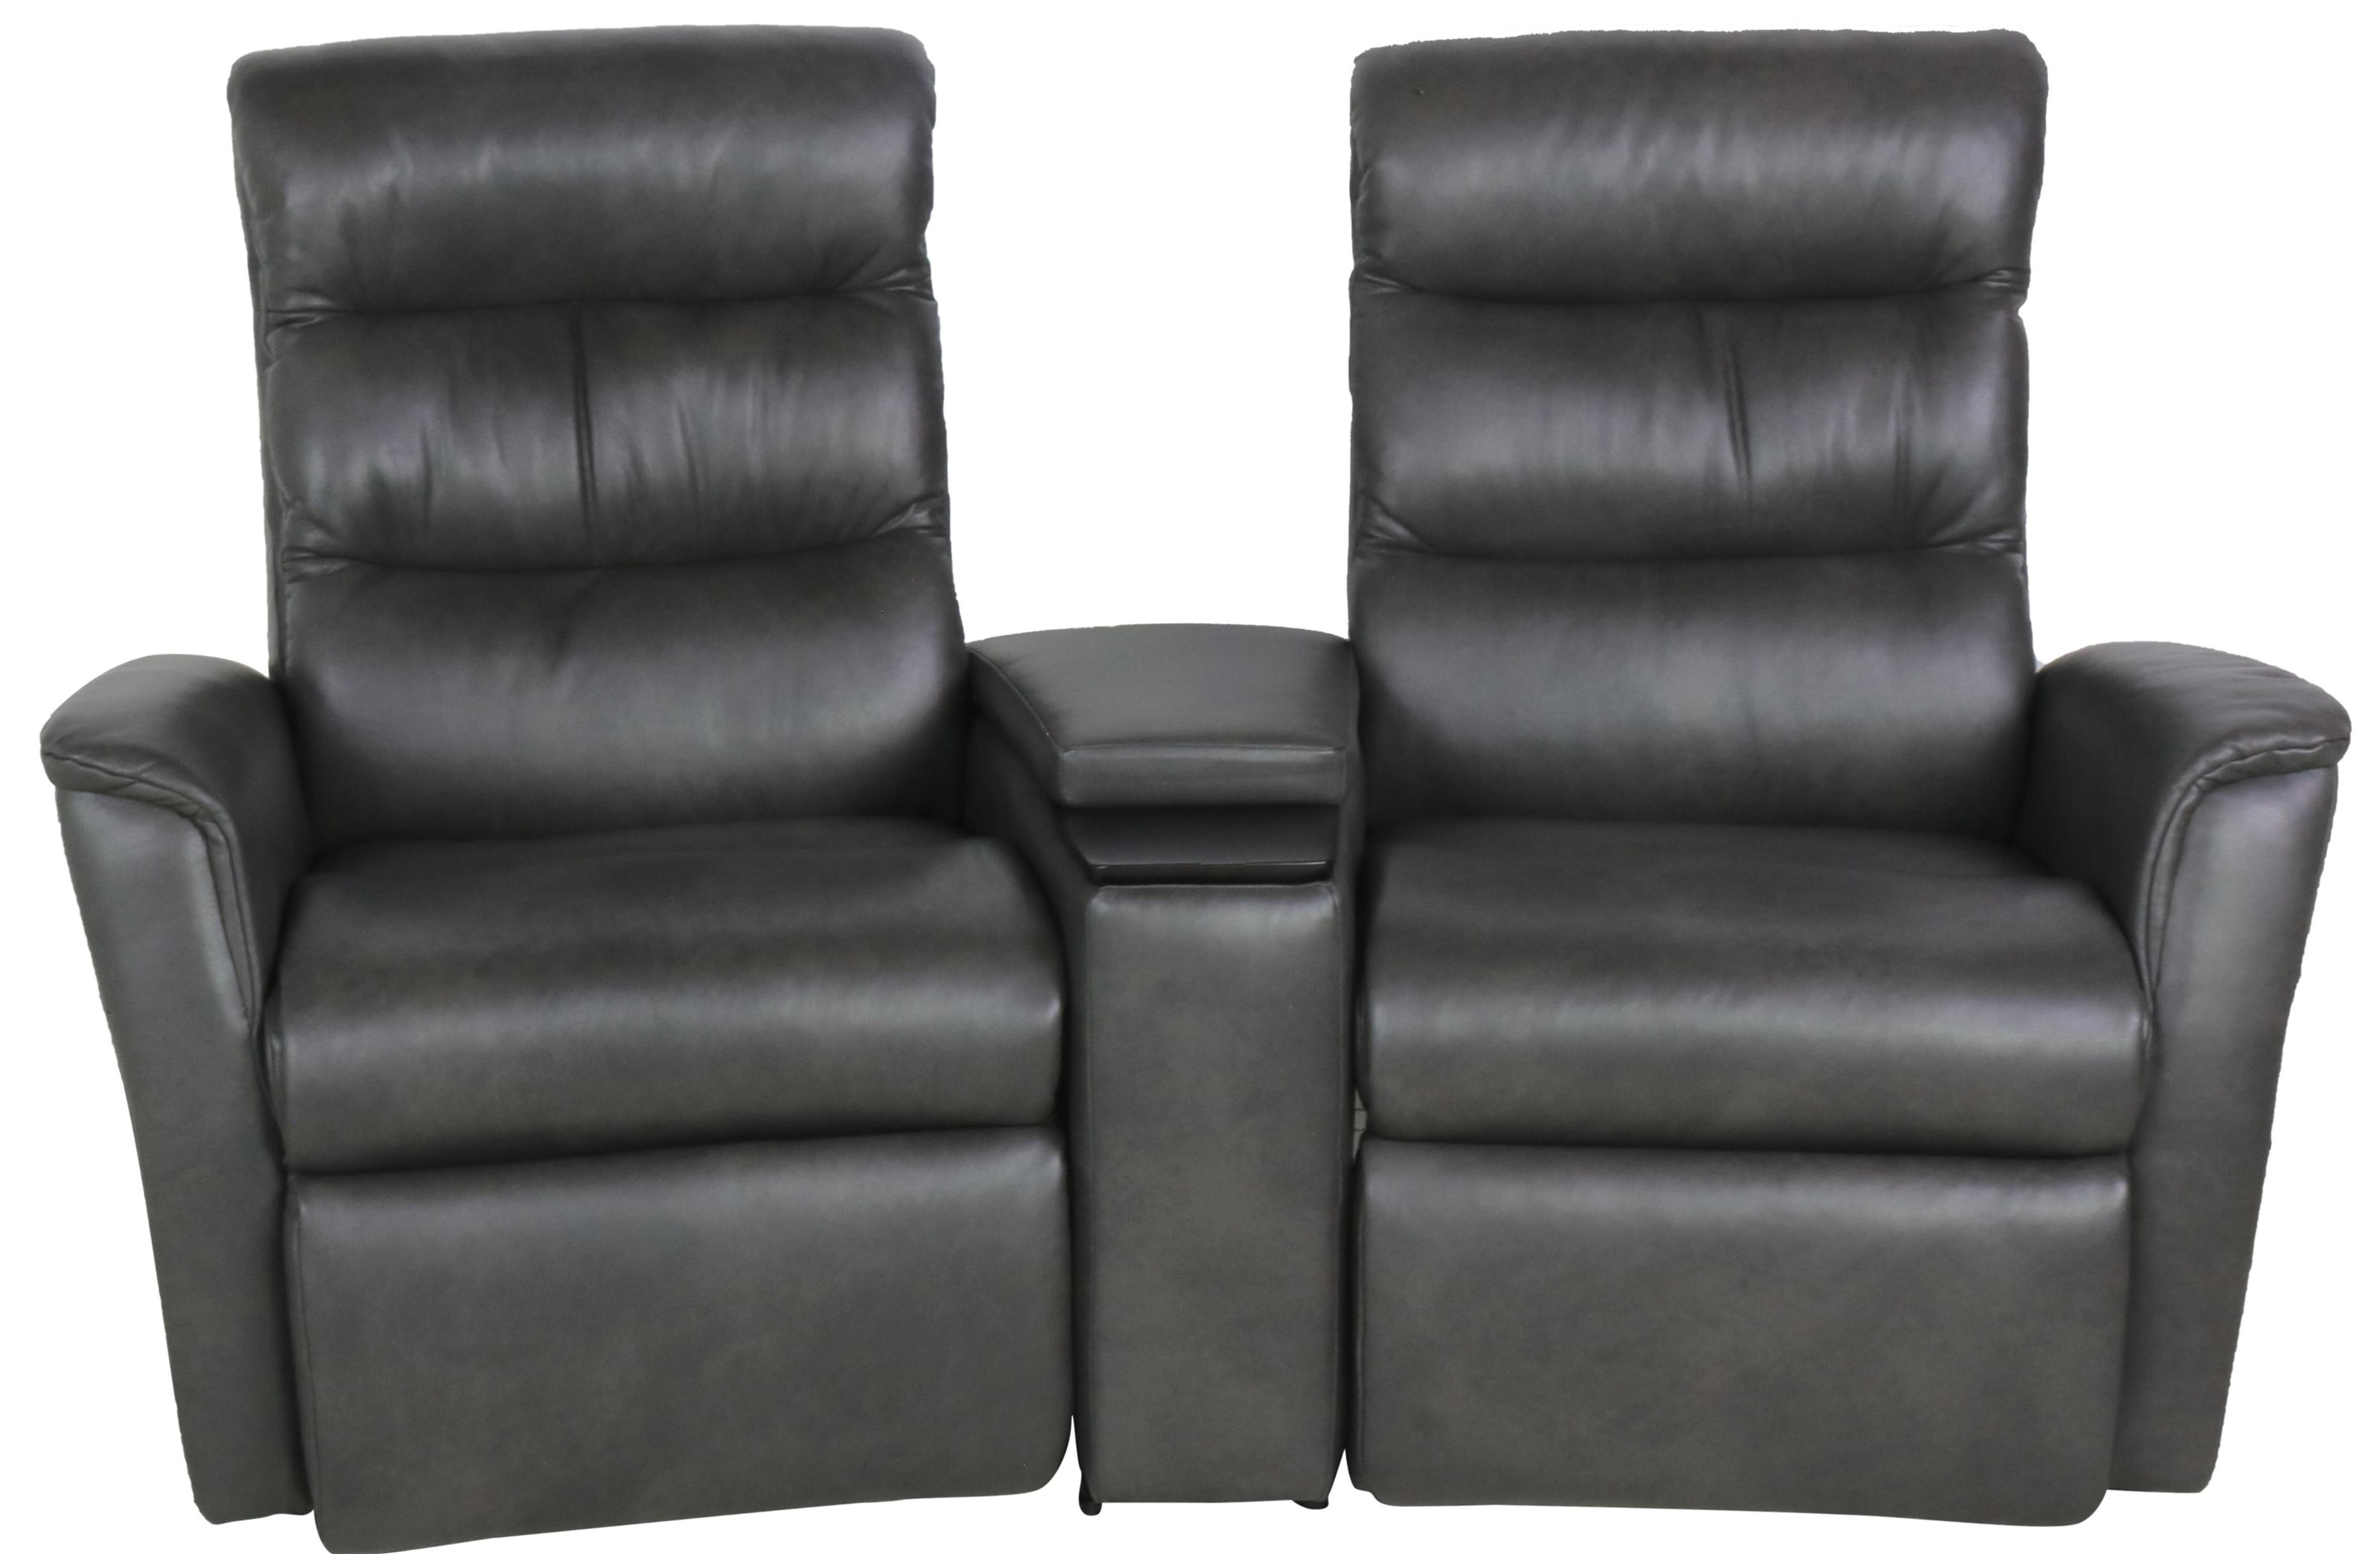 Recliners Theater Reclining Seats by IMG Norway at Sprintz Furniture